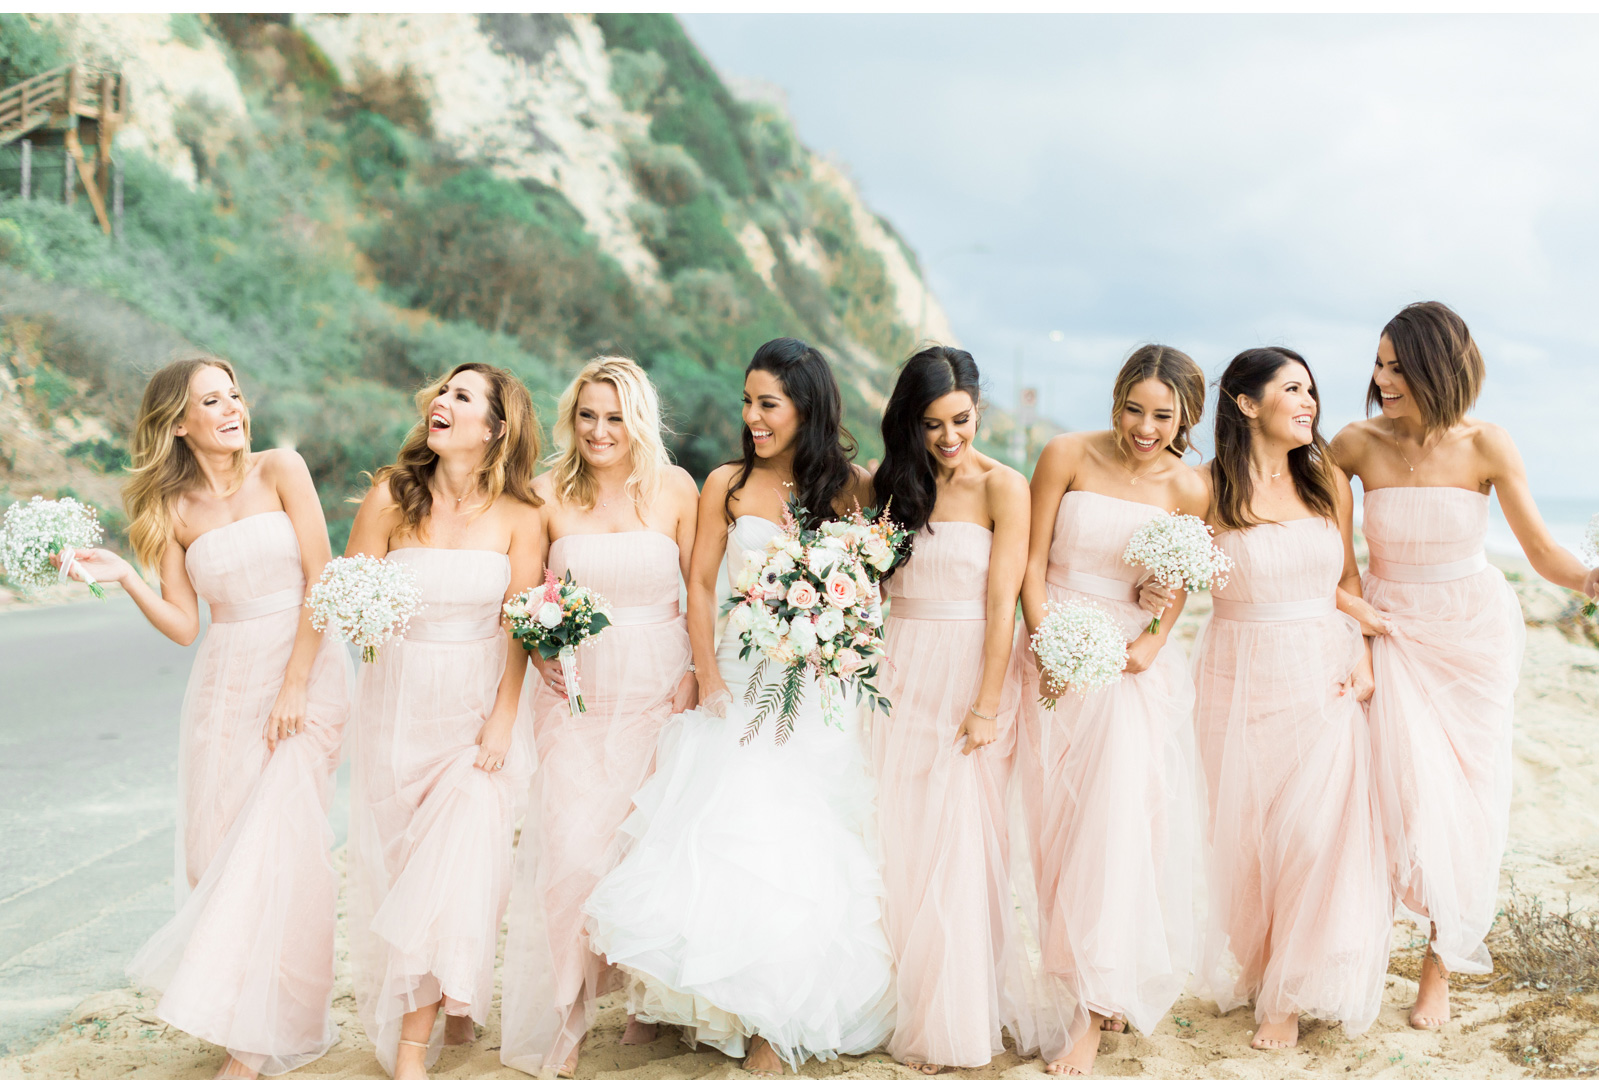 Rod-and-Lorin-Brewster-Style-Me-Pretty-Malibu-Beach-Wedding-Natalie-Schutt-Photography_08.jpg